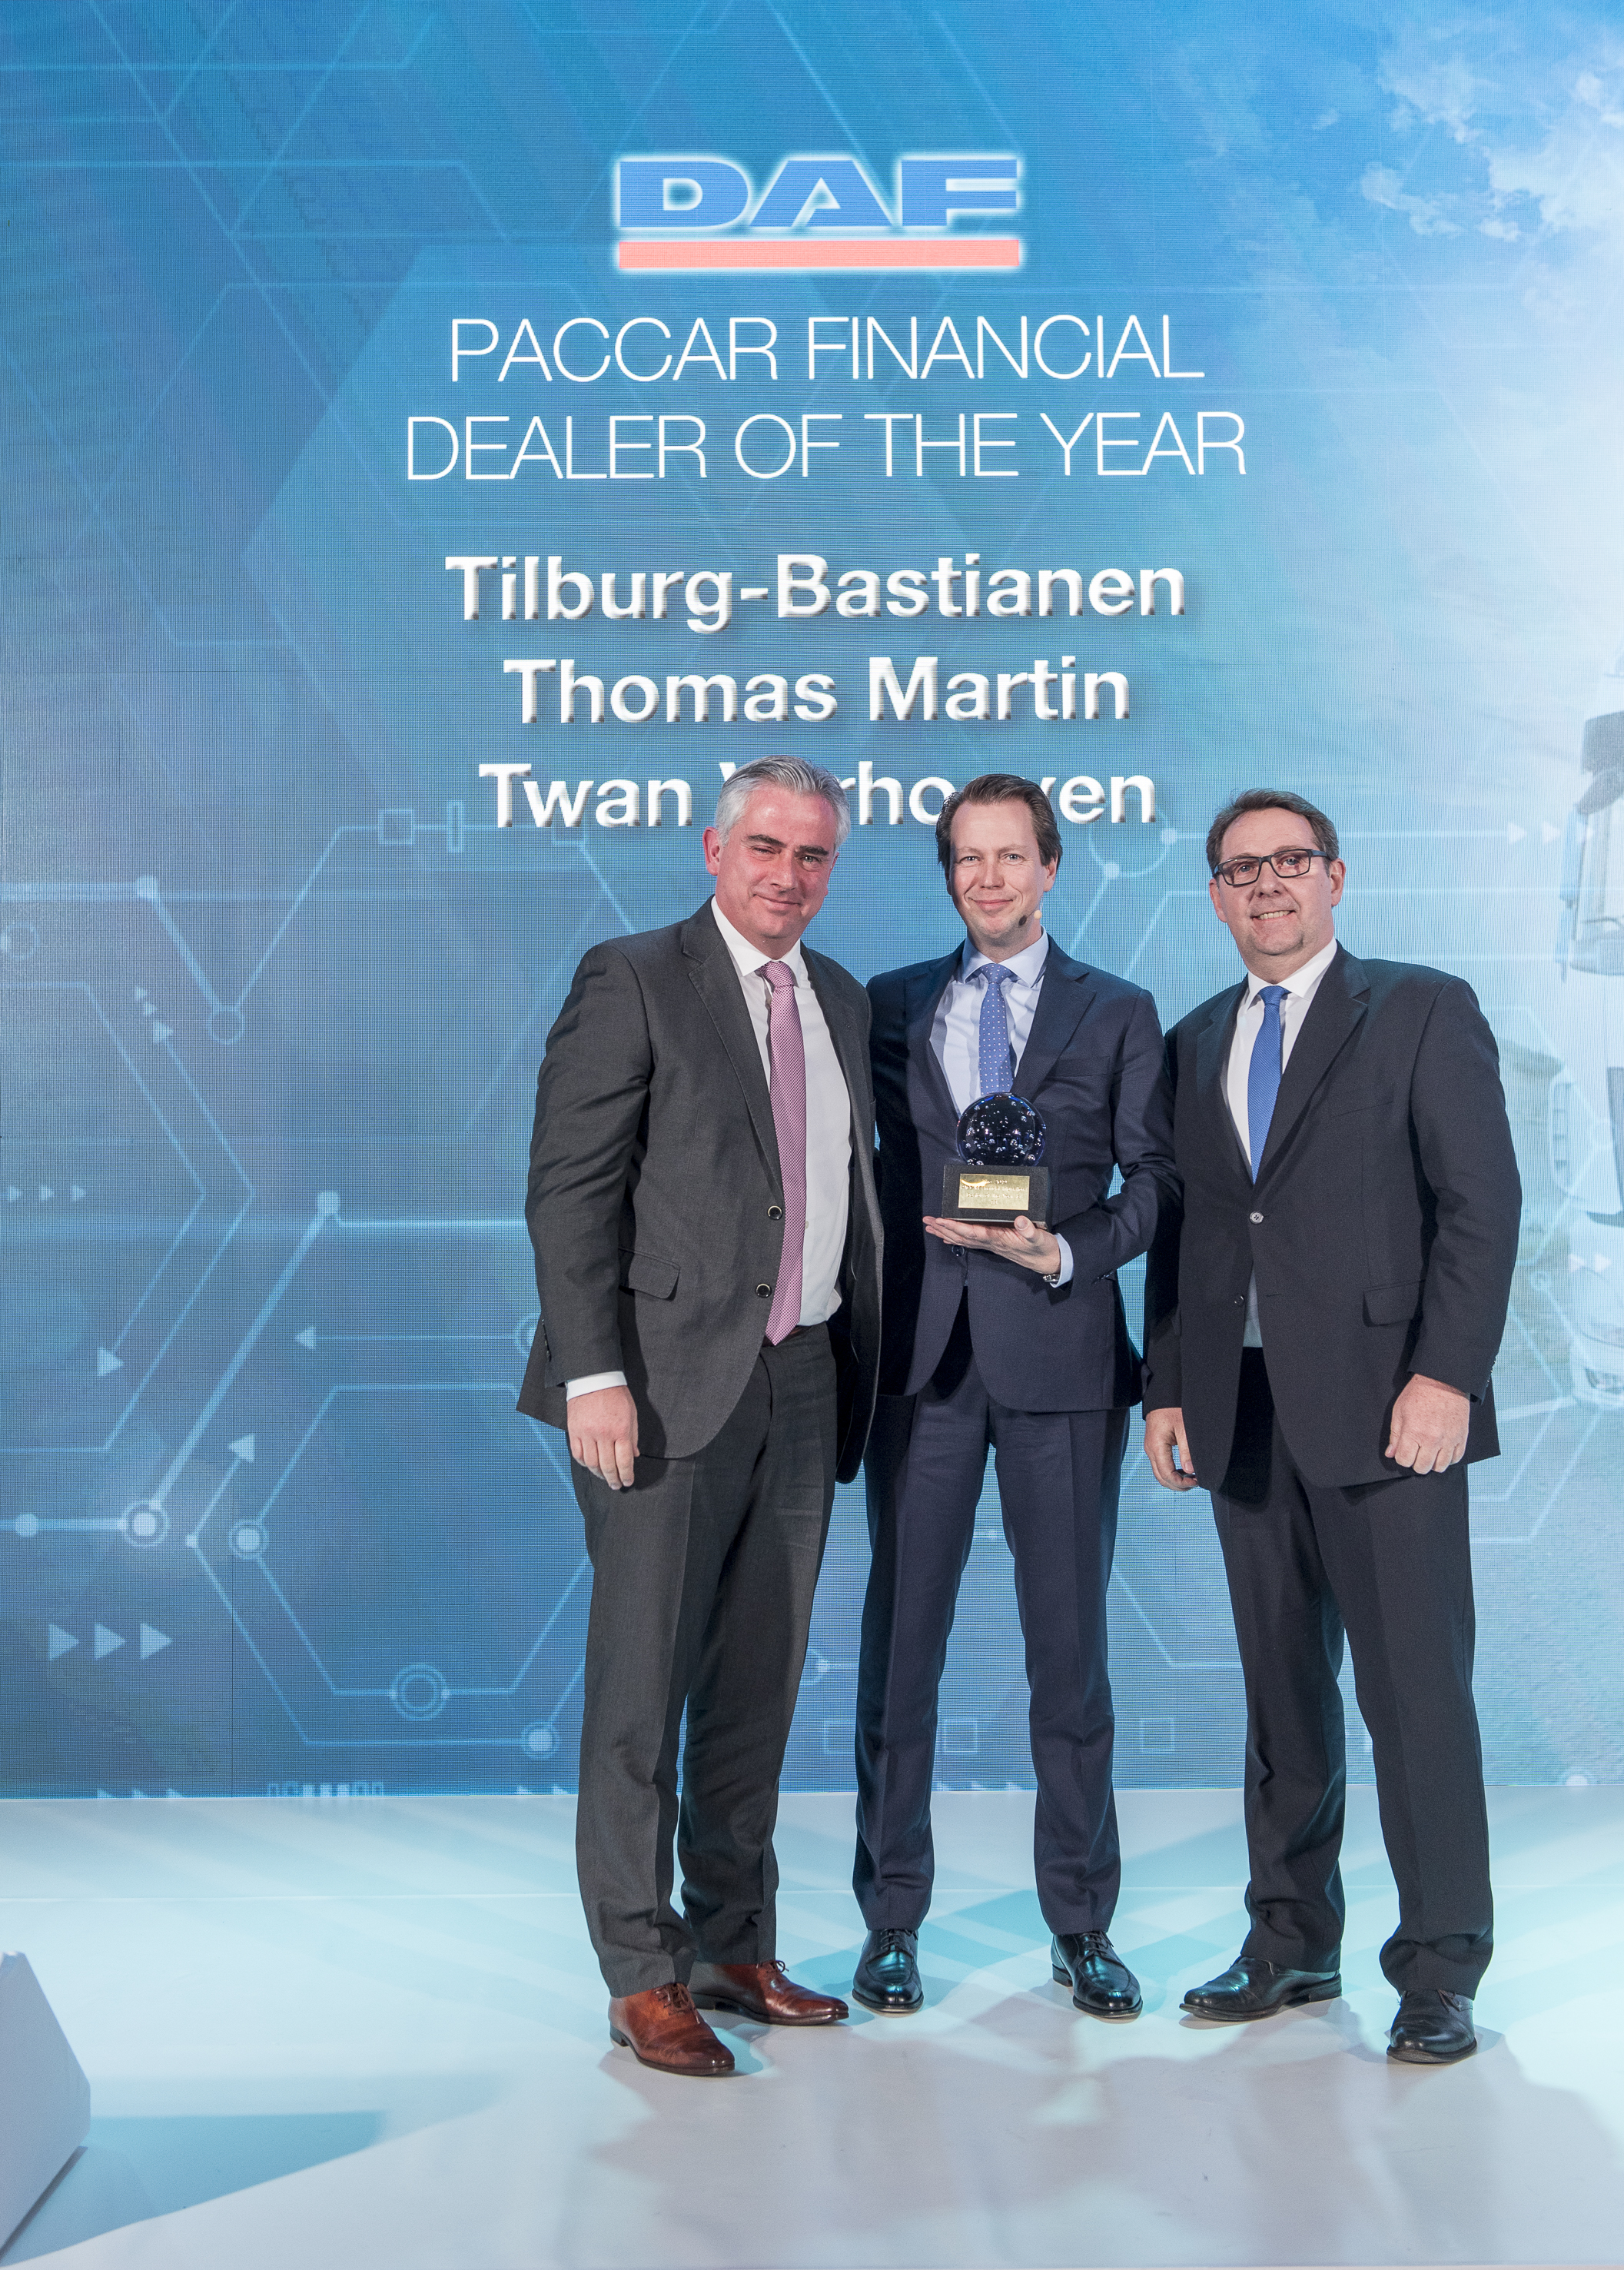 02. PACCAR Financial Dealer of the Year 2019